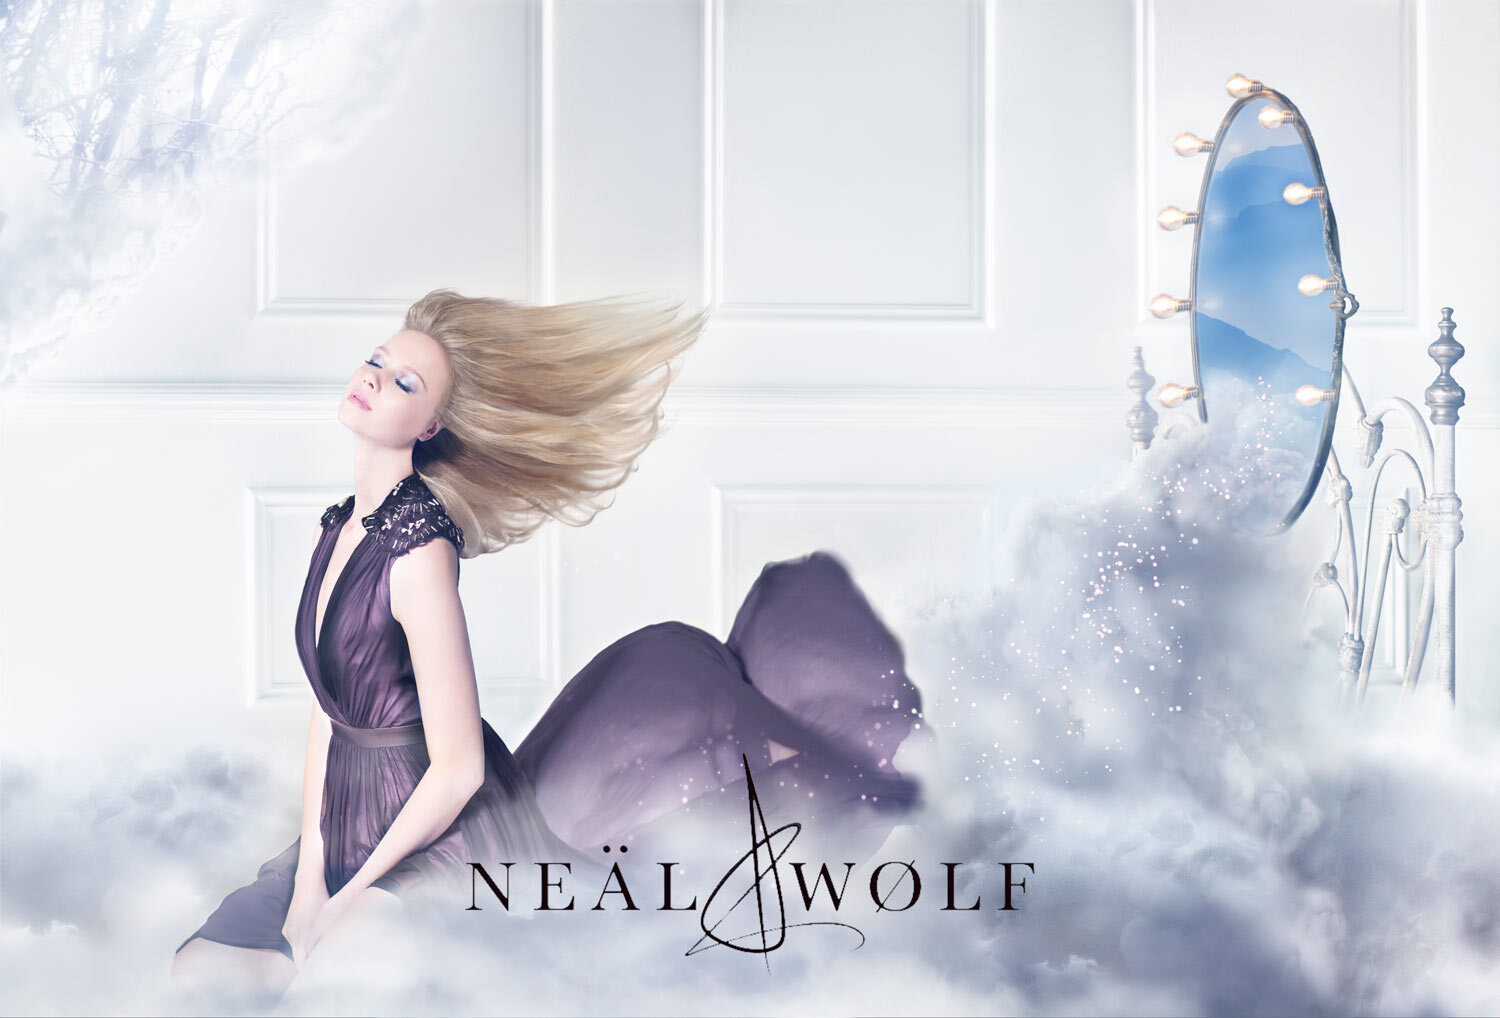 Neal & Wolf